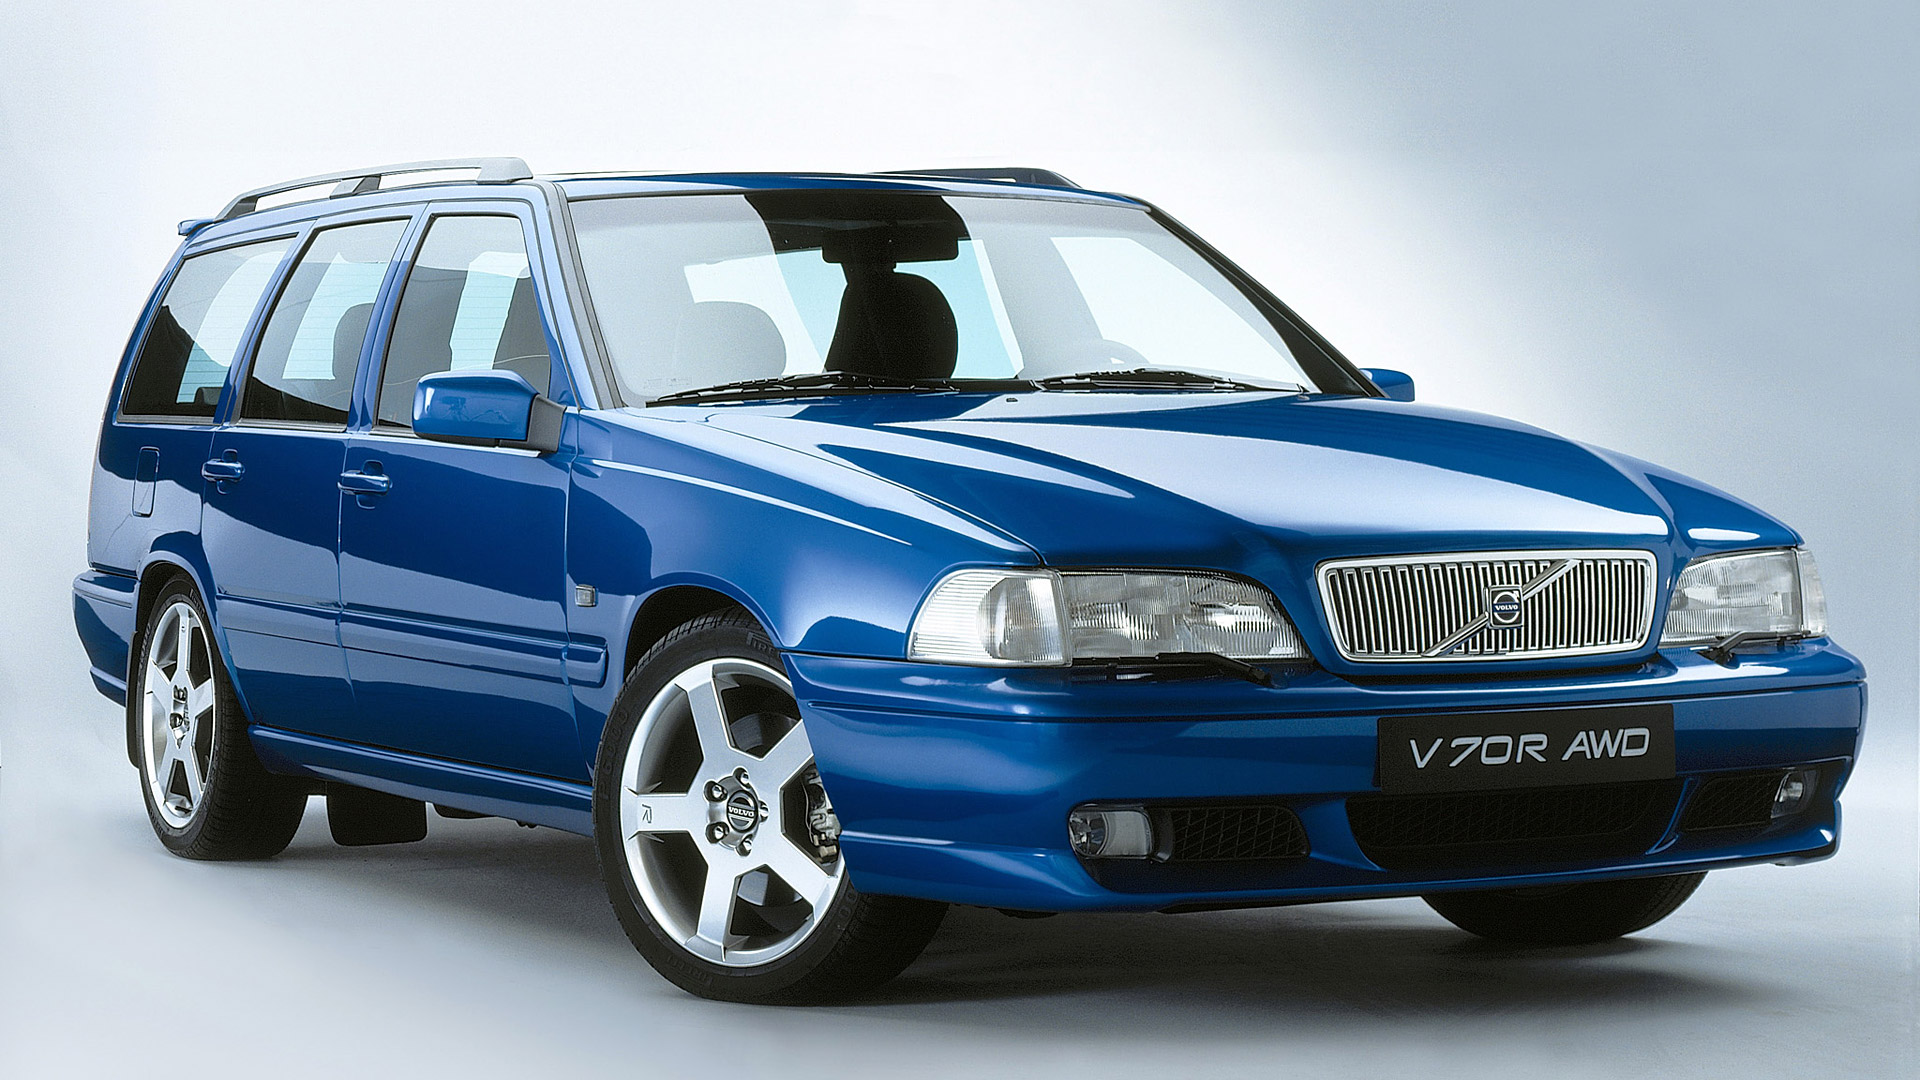 1997 Volvo V70 R AWD Wallpapers HD Images   WSupercars 1920x1080